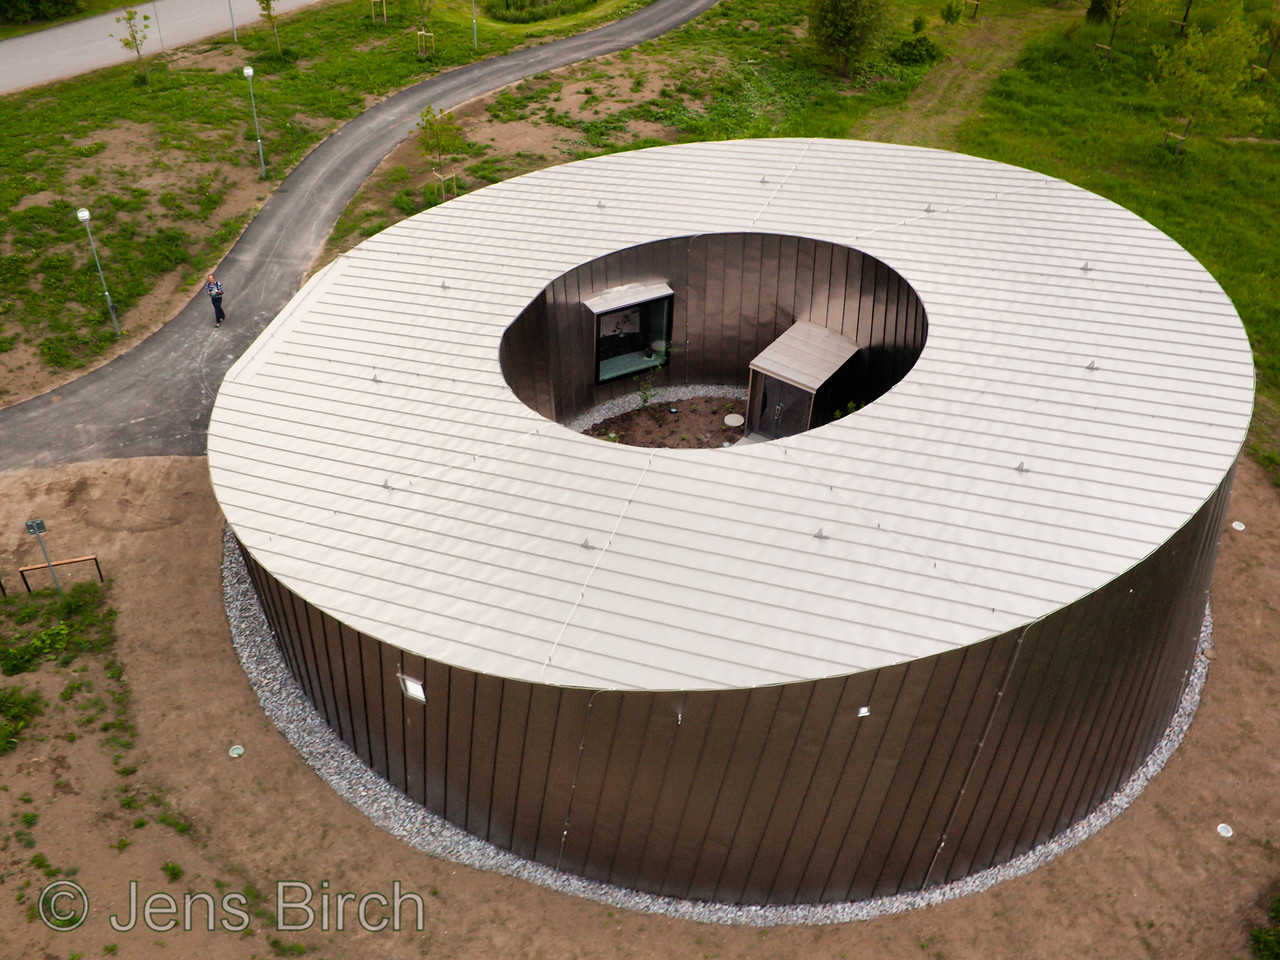 The Ångström building at Linköping University as seen from above. The Å-building is covered with Titanium plate and hosts our new electron microscope - currently northerns Europe's most powerful.<br /> <br /> I made this photo by launching the camera with my 2.15x1.8 m² Rokkaku kite.